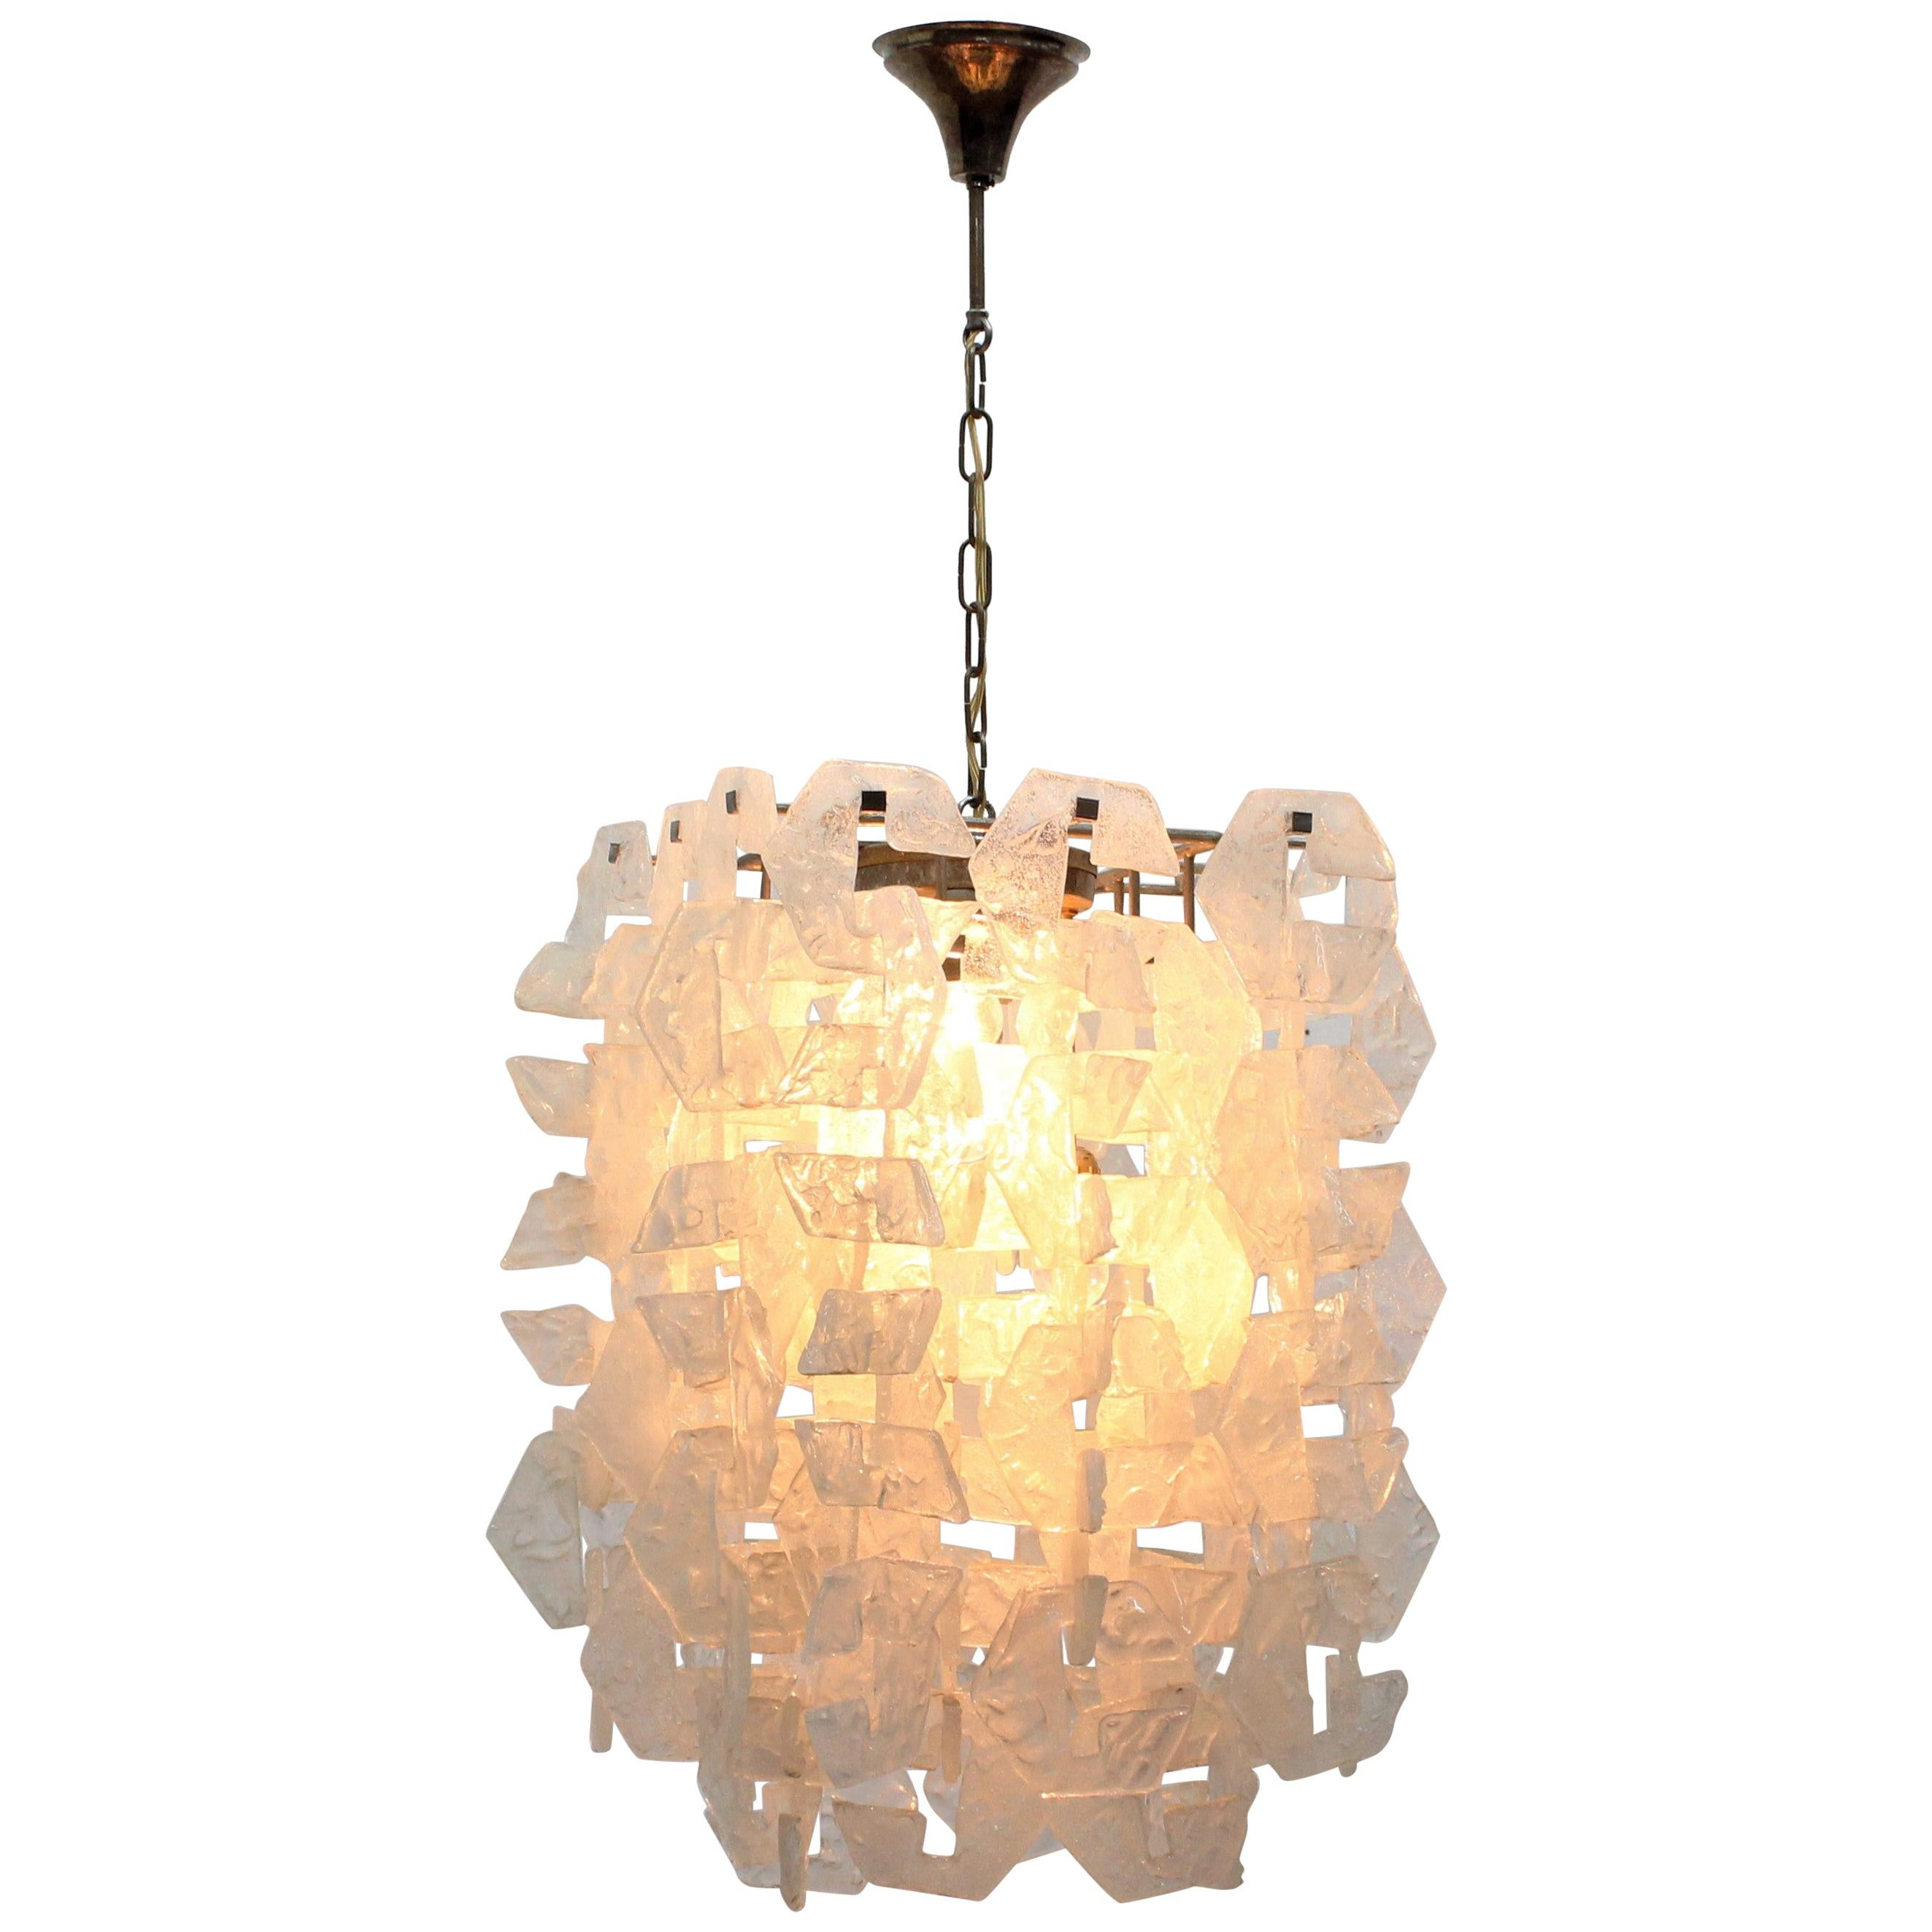 Murano Crystal and Opaline Glass Chandelier by Mazzega